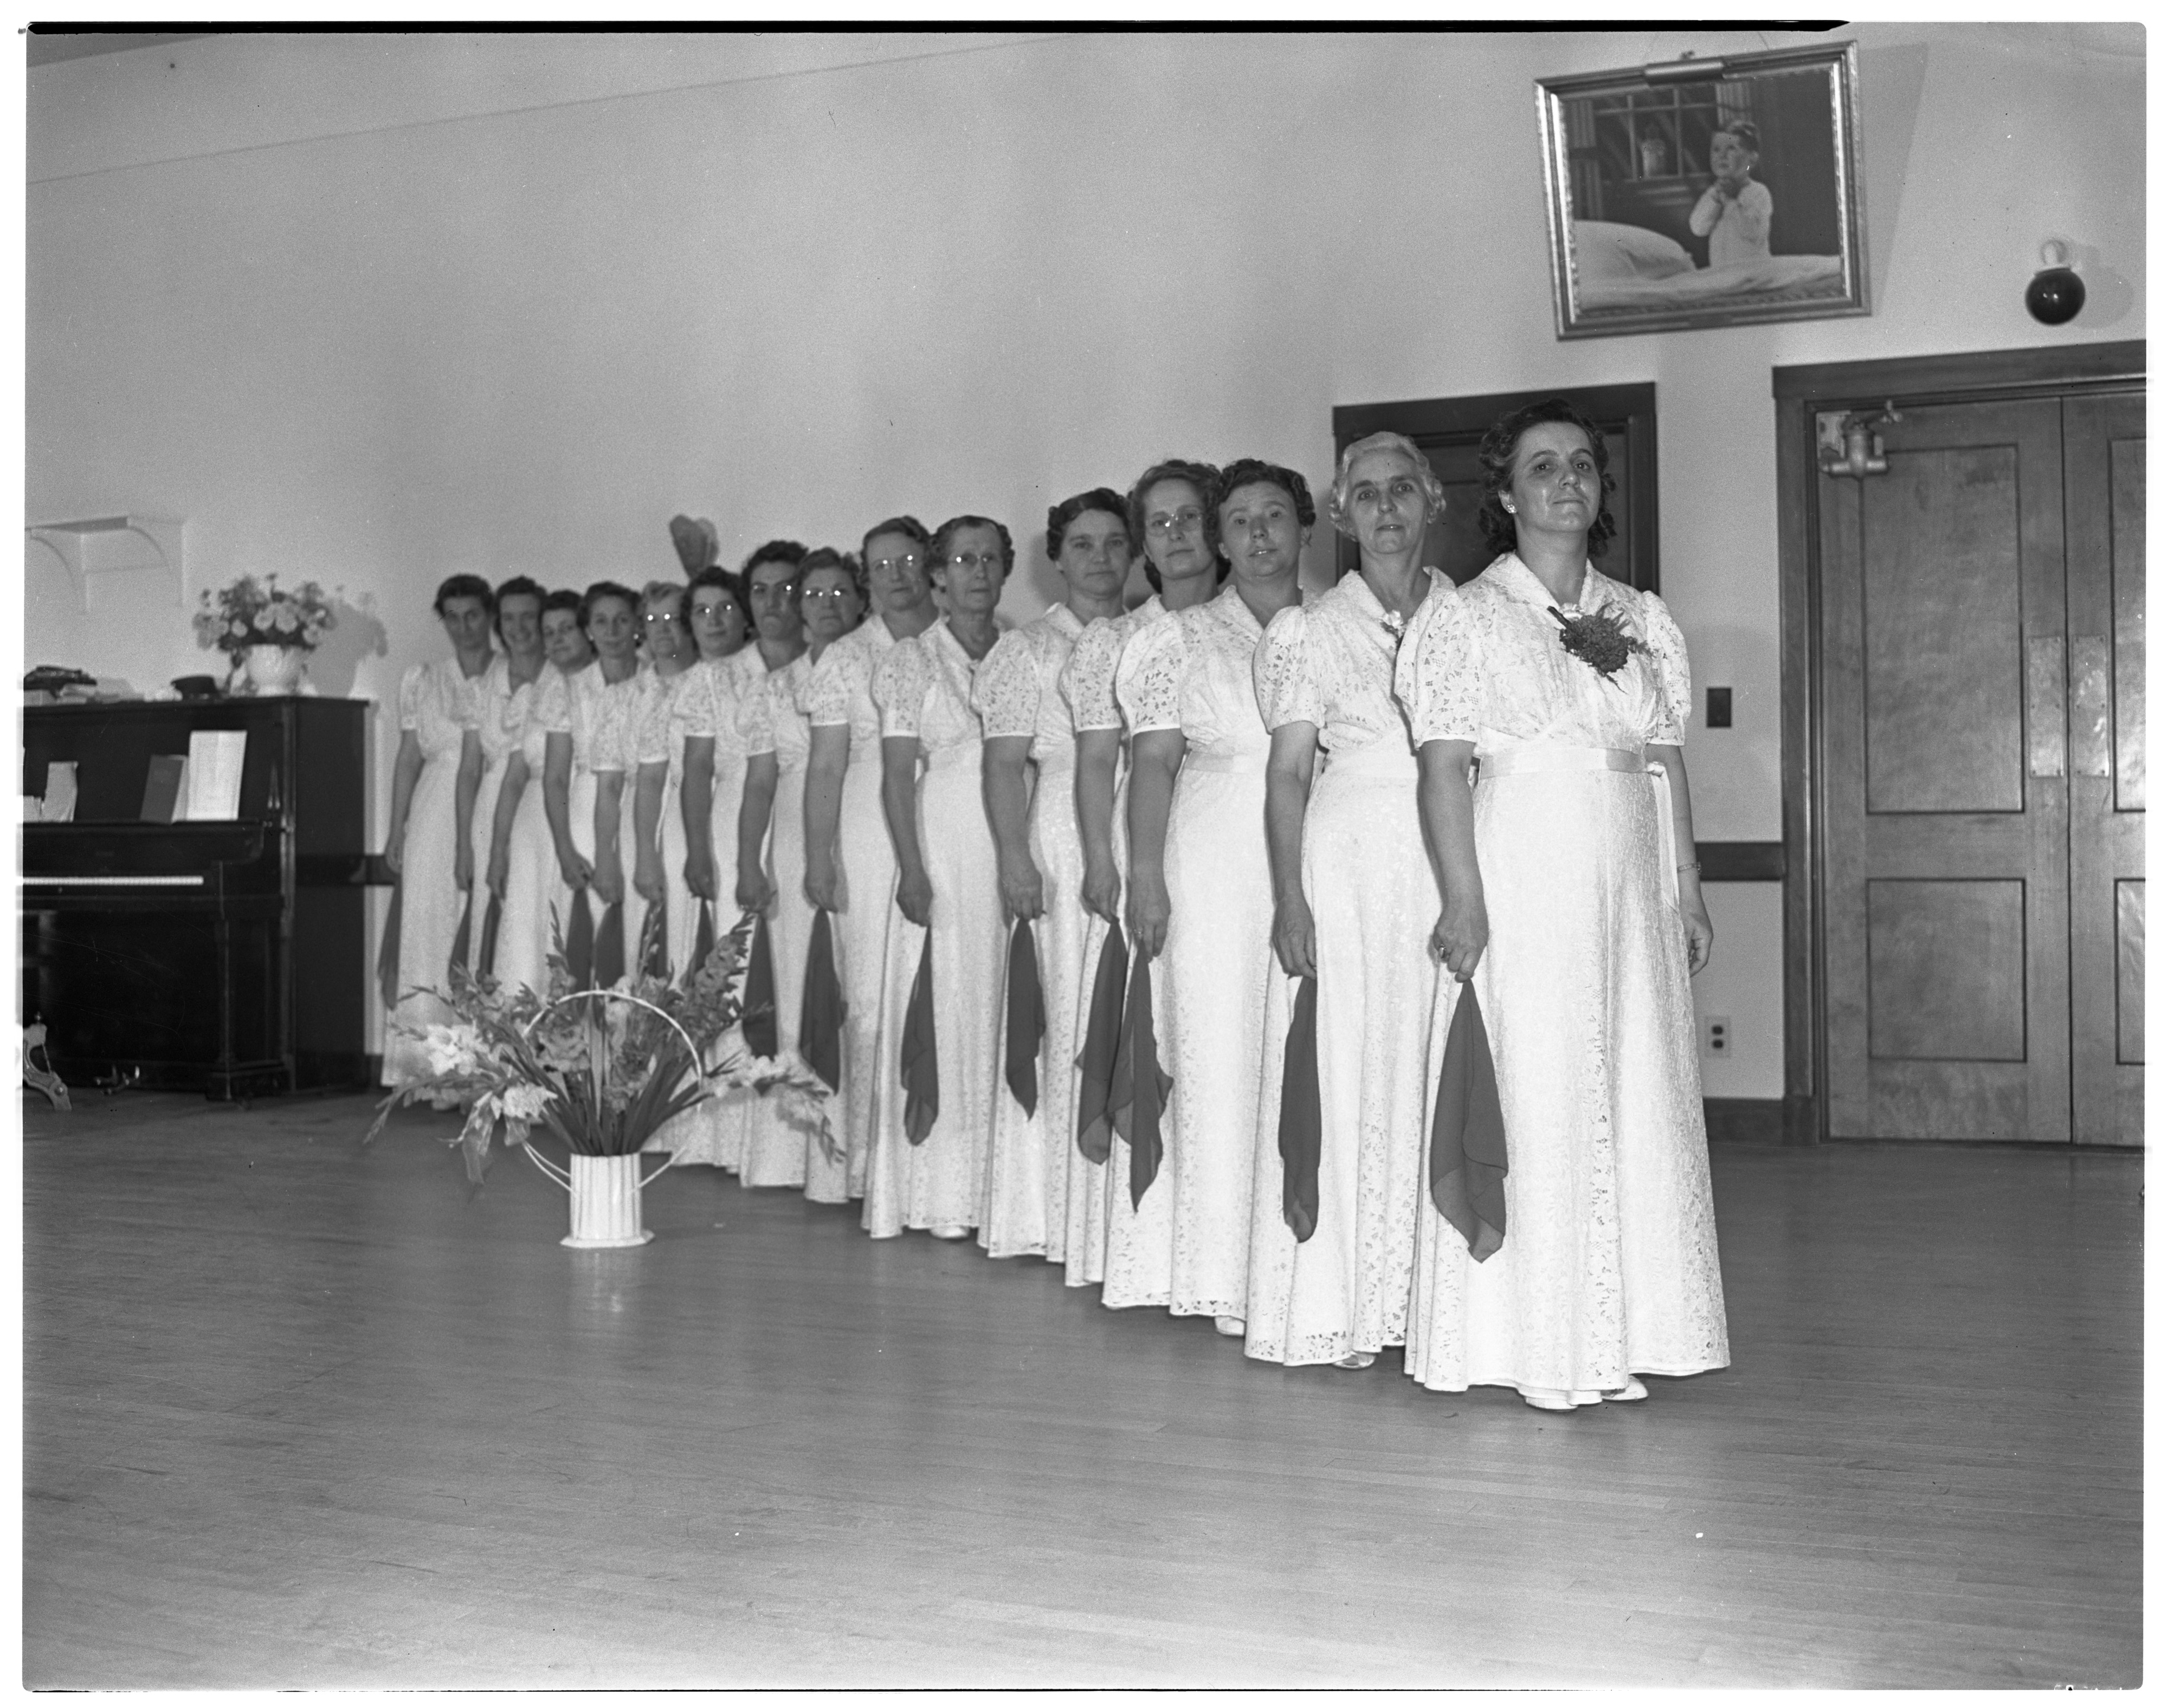 Royal Neighbors Of America Drill Team, Undated image